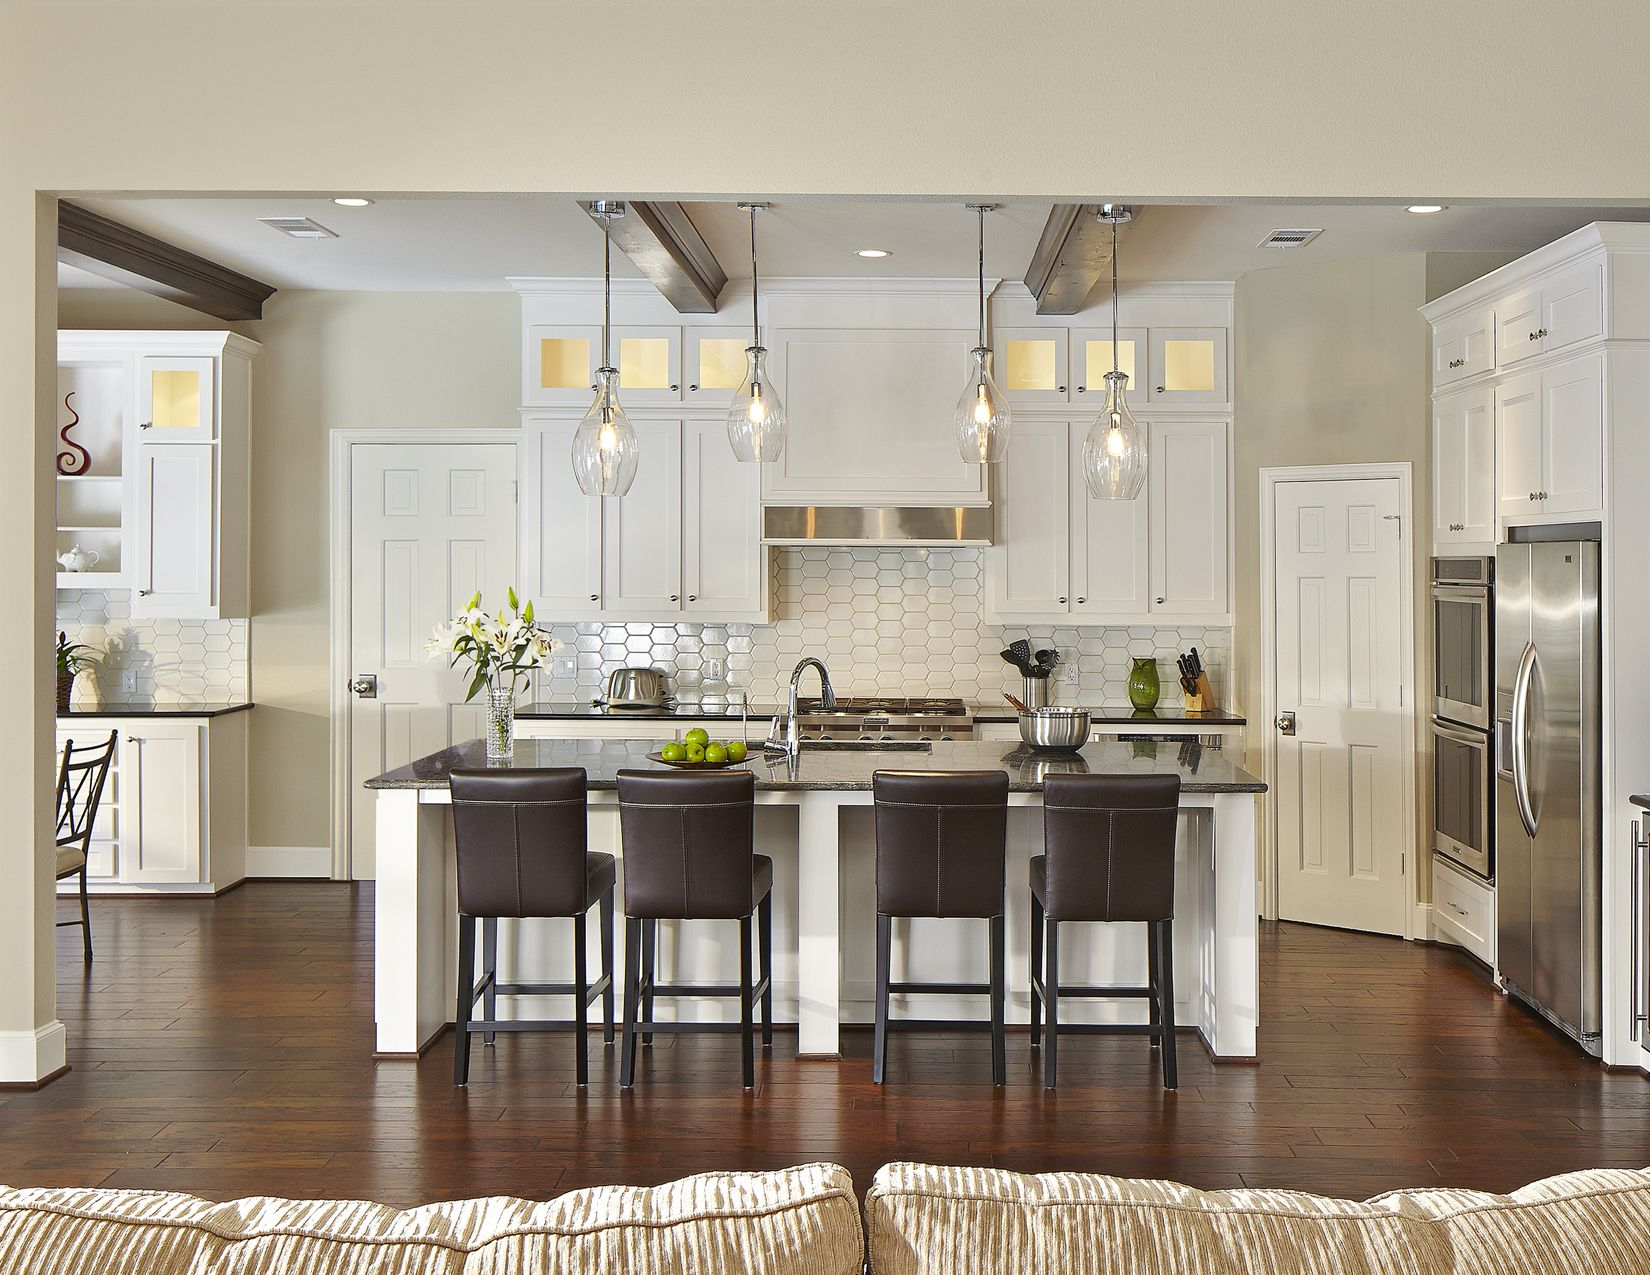 How To Design Kitchen Island Awesome Glamorous Large Kitchen Island With Seating  Kitchen Design Inspiration Design